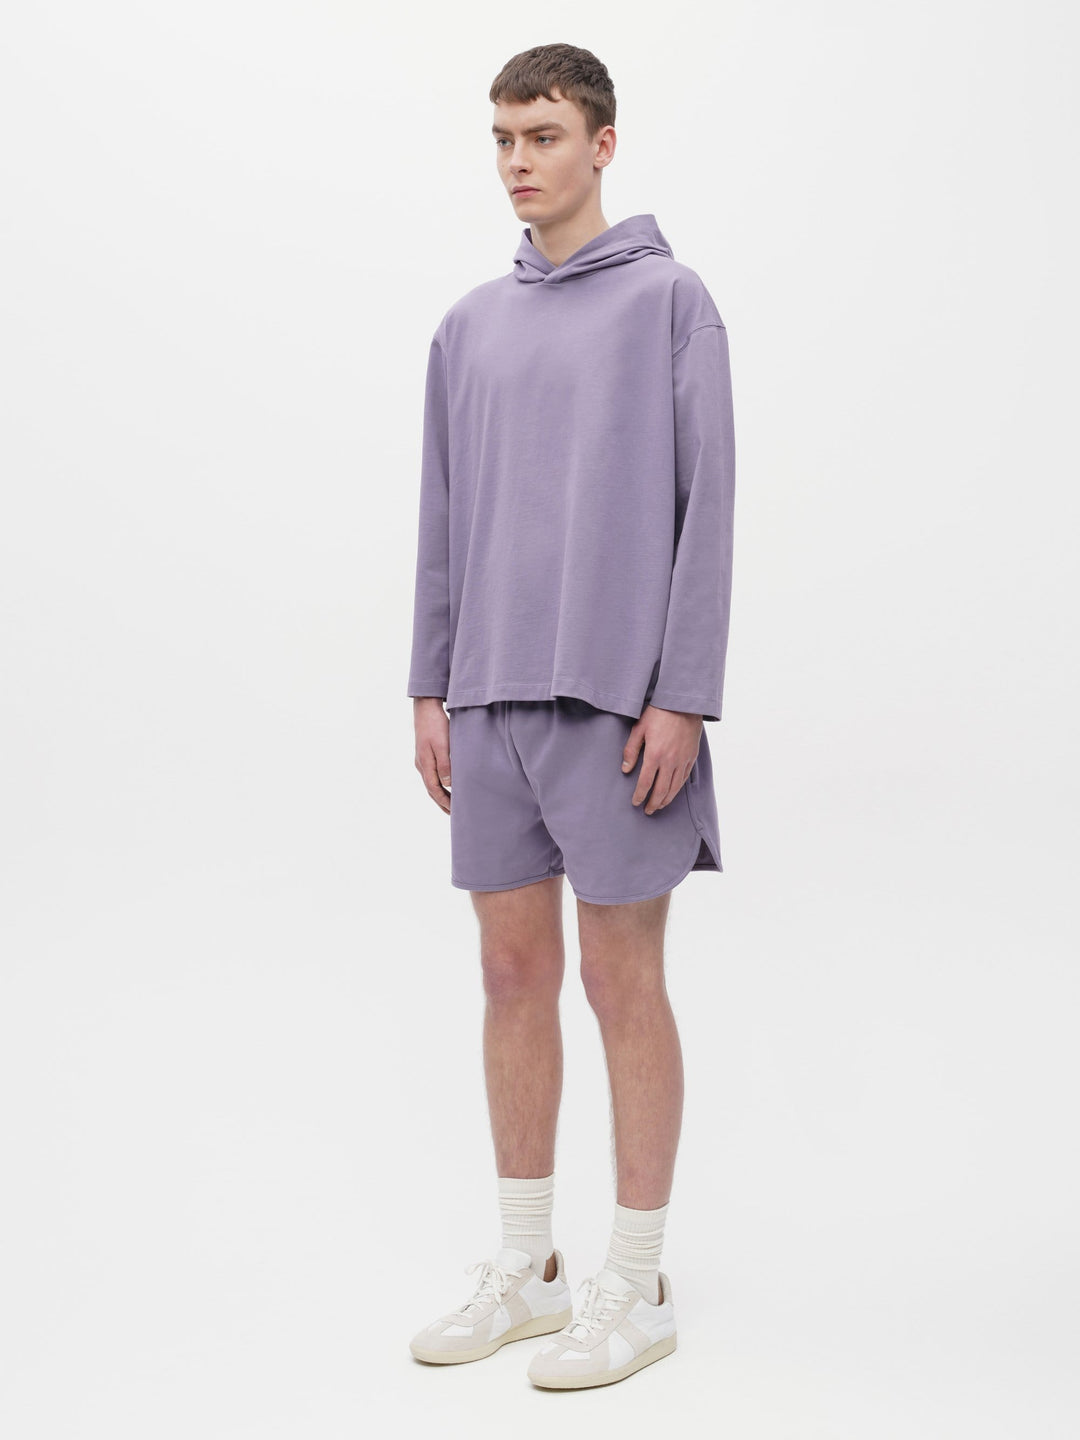 Unisex Hooded Pocket T-Shirt Purple